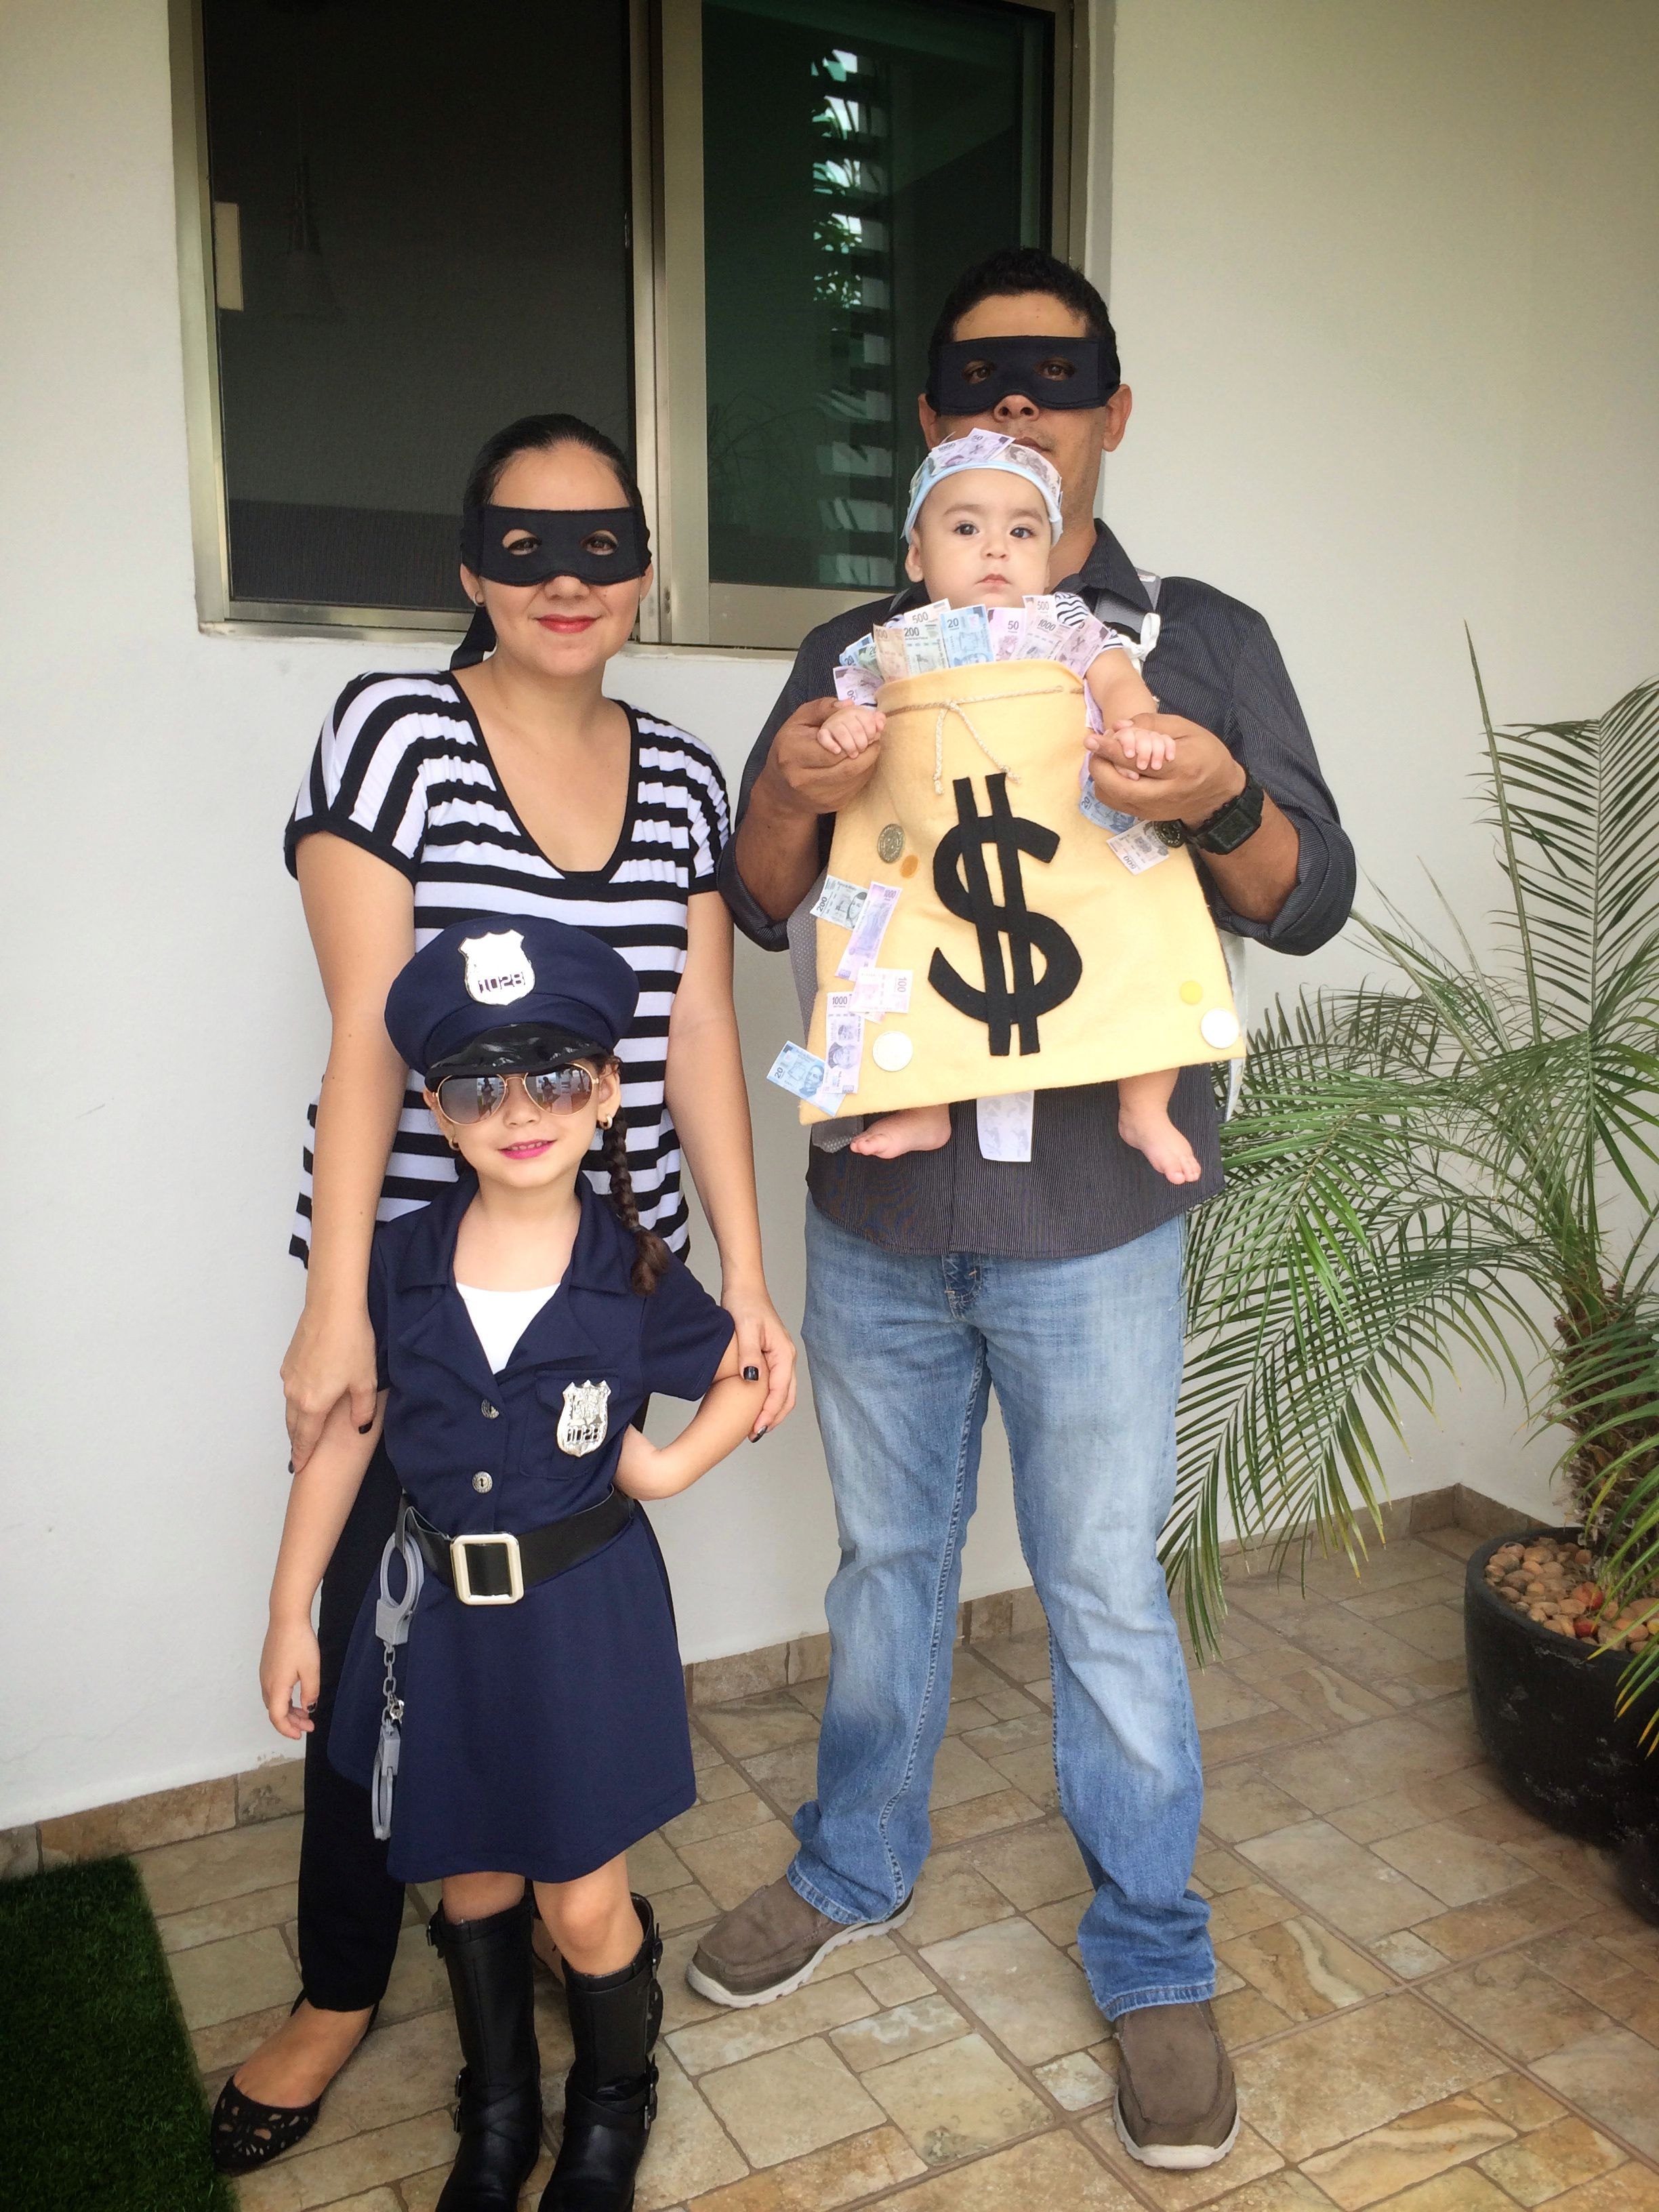 Family Costume Idea Bank Robbers Police Officer And Money Bag Cute Kids Toddler Baby Costumes